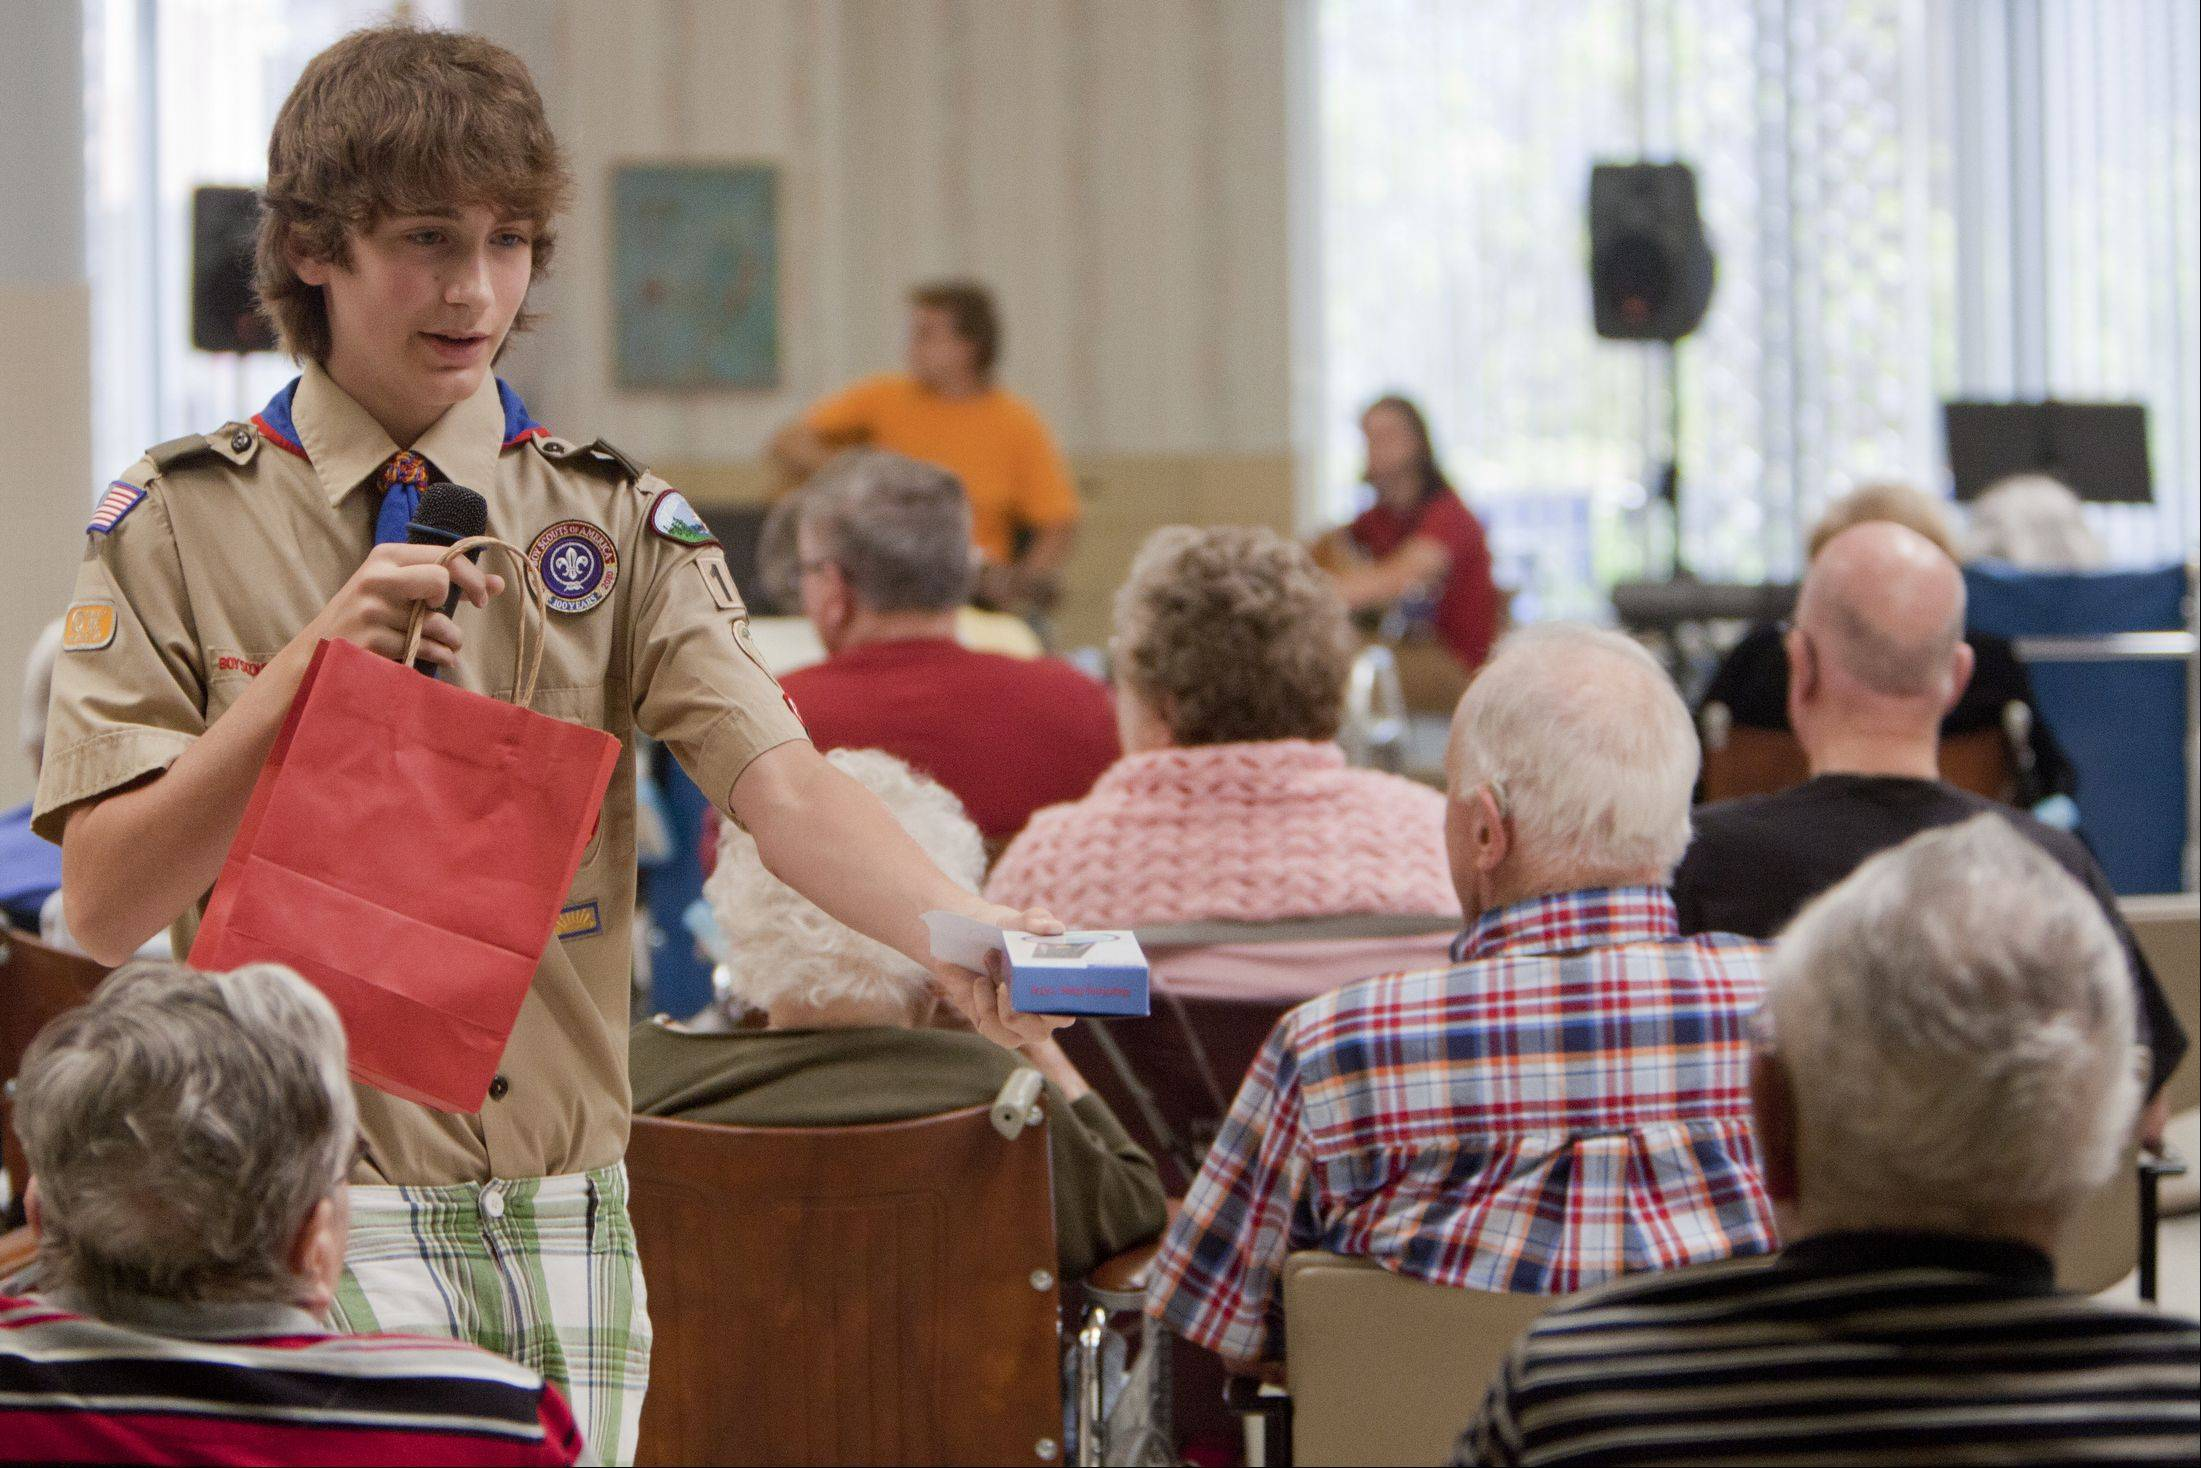 Christian Phillips, 14, of Mundelein and a member of Boy Scout Post 198 hands out a prize to a raffle winner during his volunteer project to put on a musical revue at the Winchester House nursing home in Libertyville. It was his final step to become an Eagle Scout.